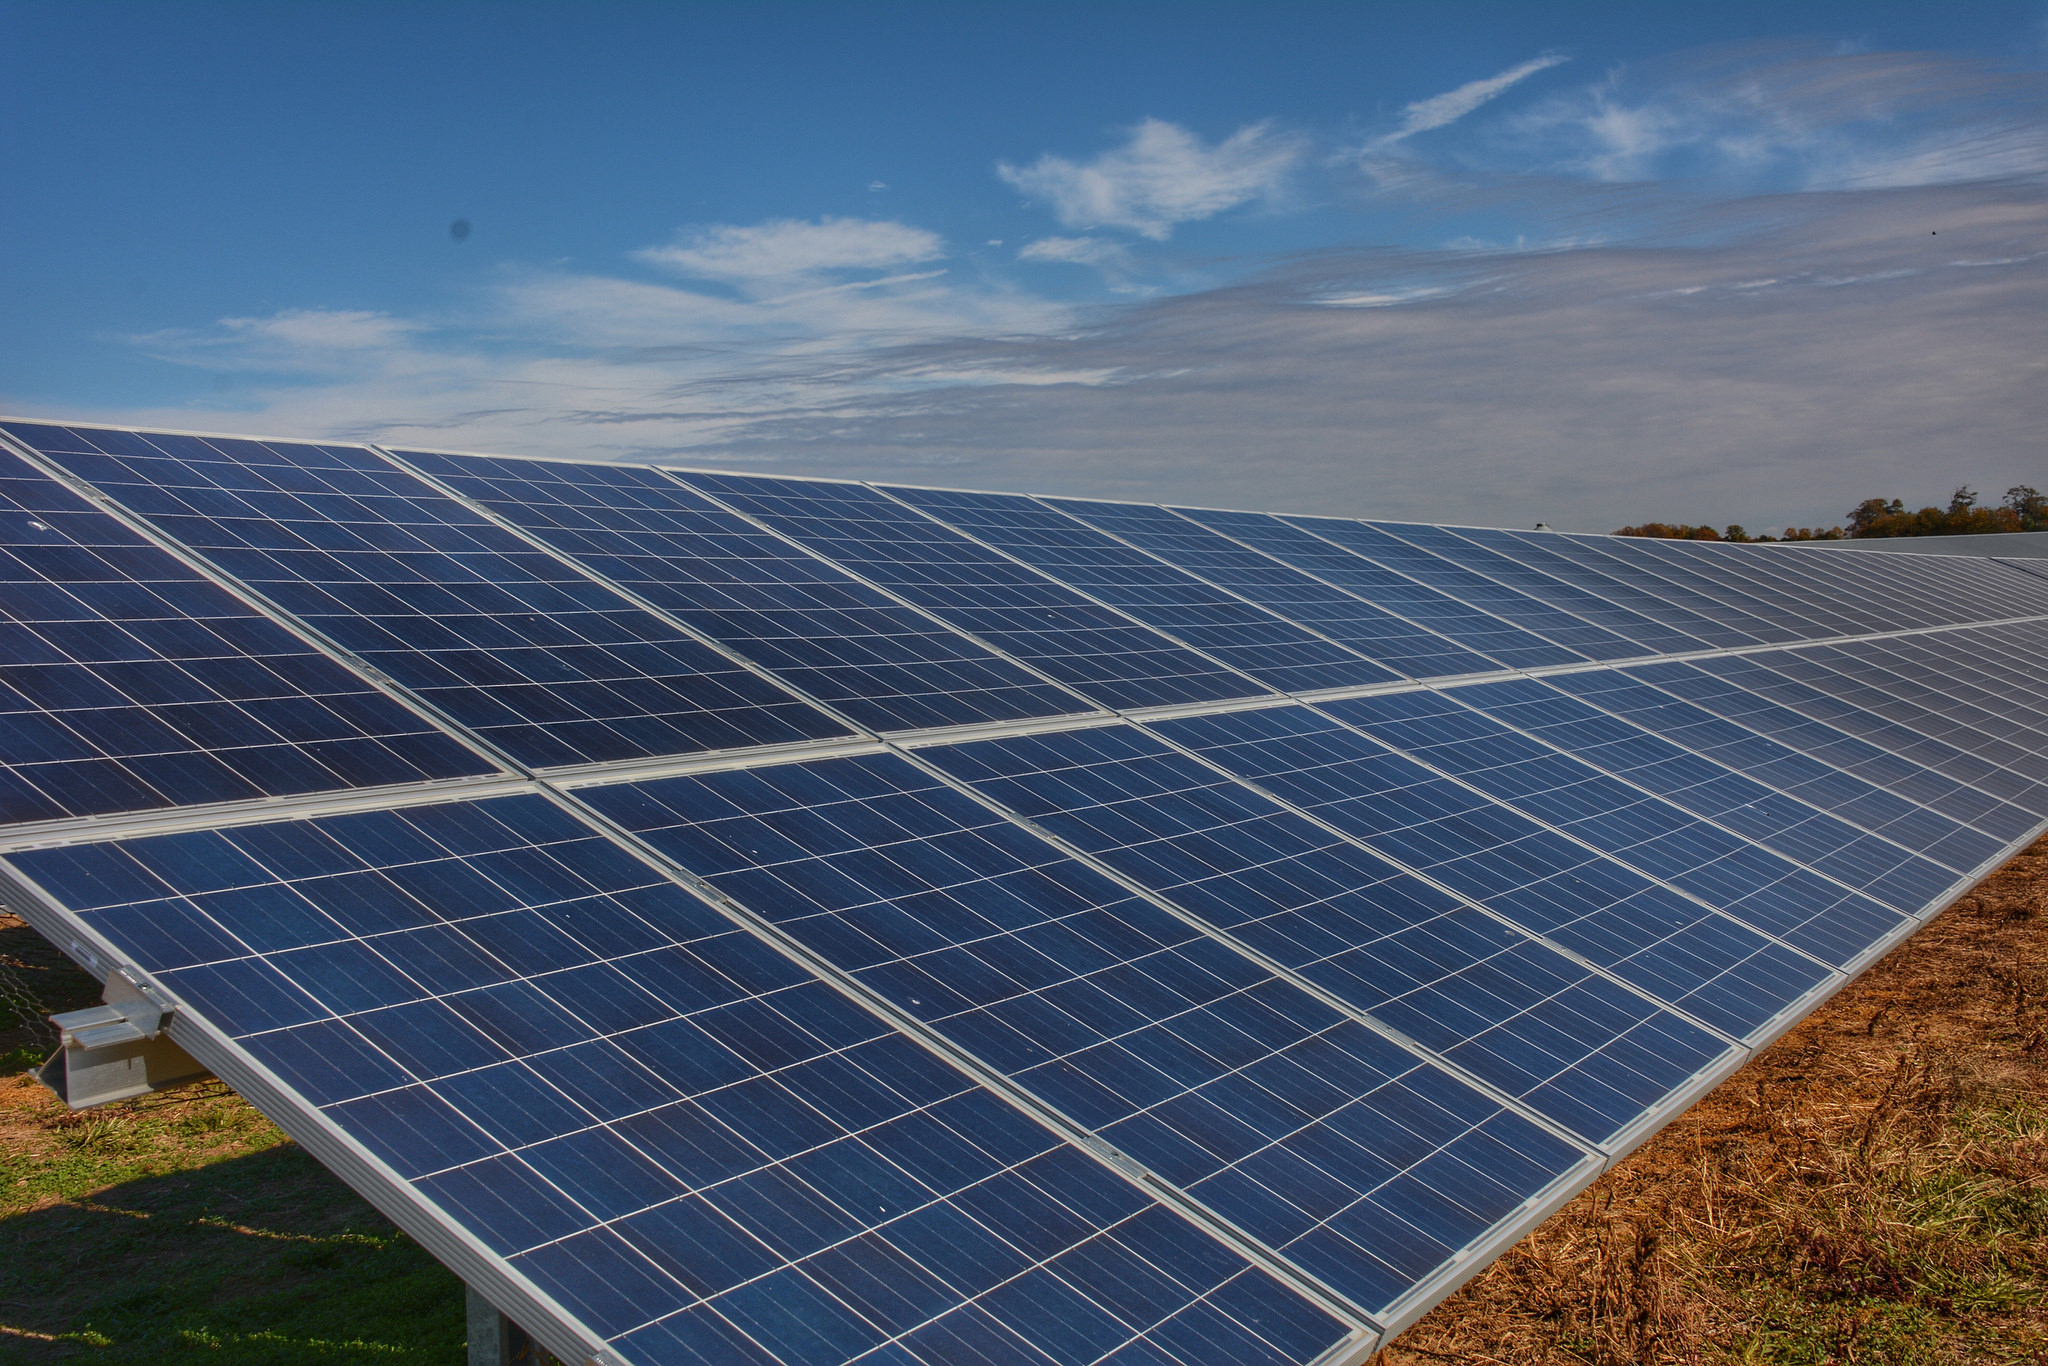 The 180MW solar plant is expected to be completed in the summer of 2018. Image: Delaware Cooperative Extension / Flickr